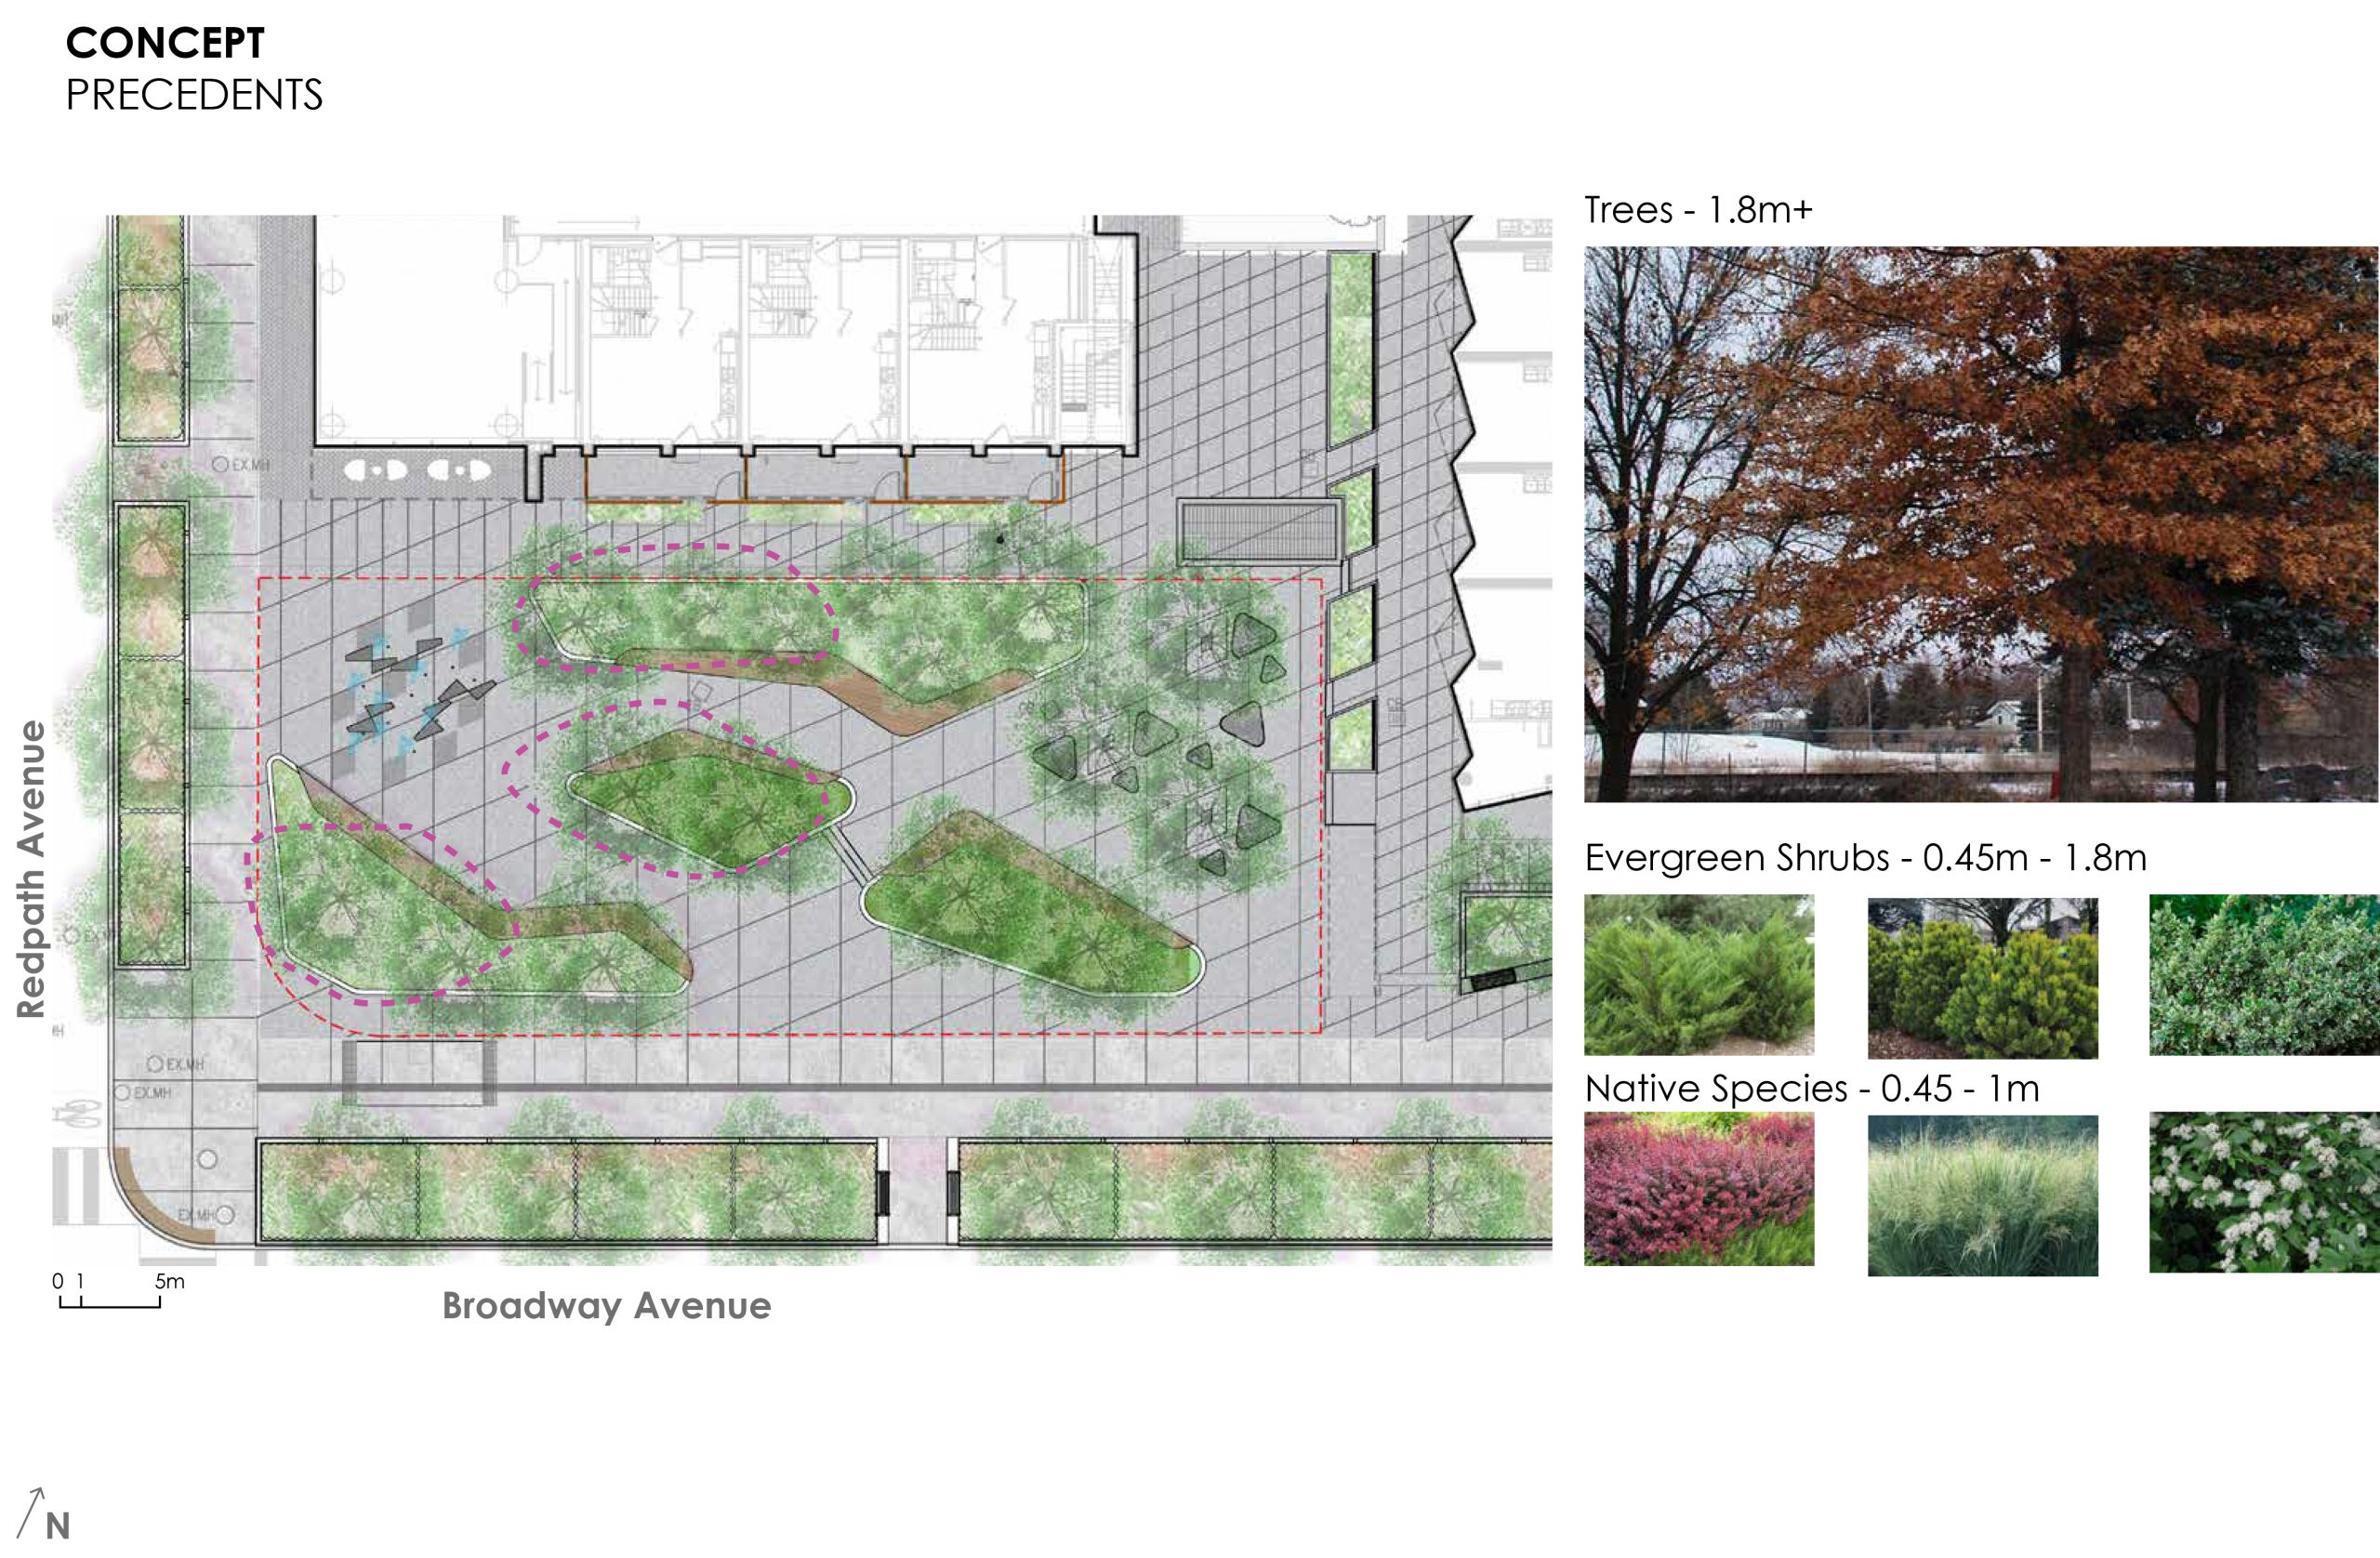 An image that provides some examples of the trees, shrubs and native plants proposed for the new park.